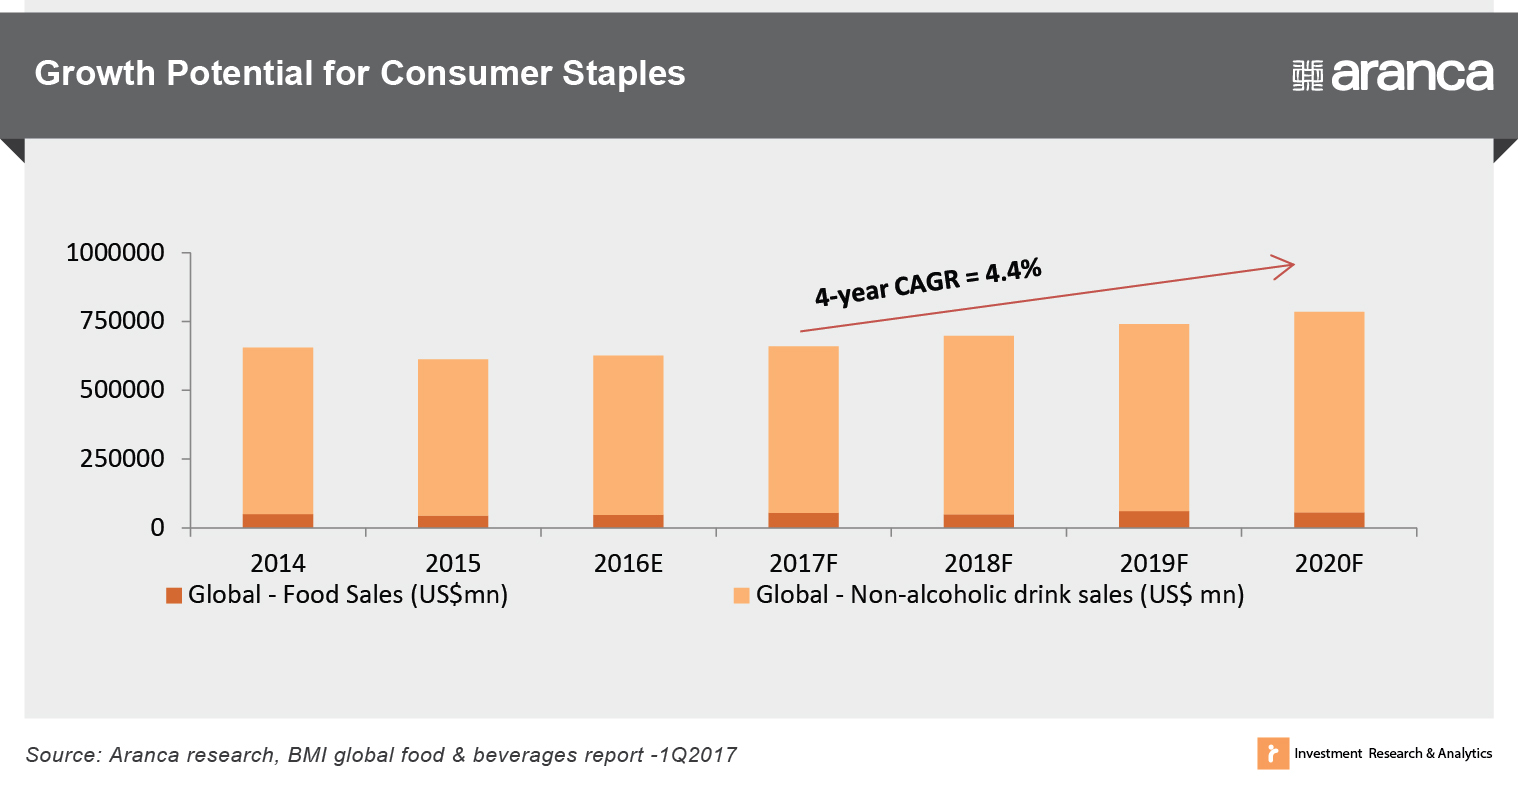 Growth Potential - Consumer Staples